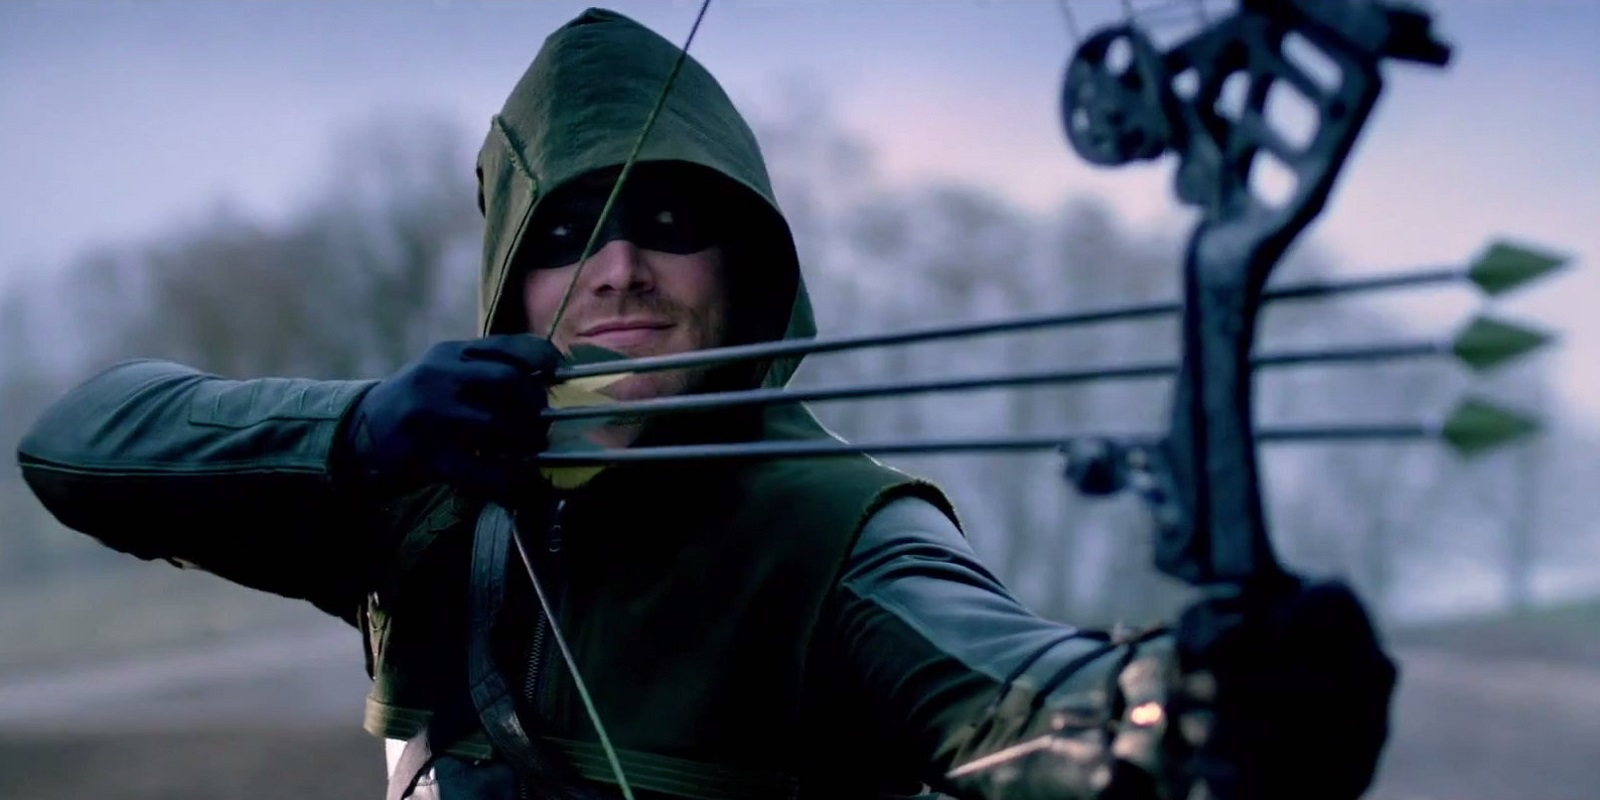 Green arrow images picture 15 Trick Arrows We Want To See In Arrow | Screen Rant picture